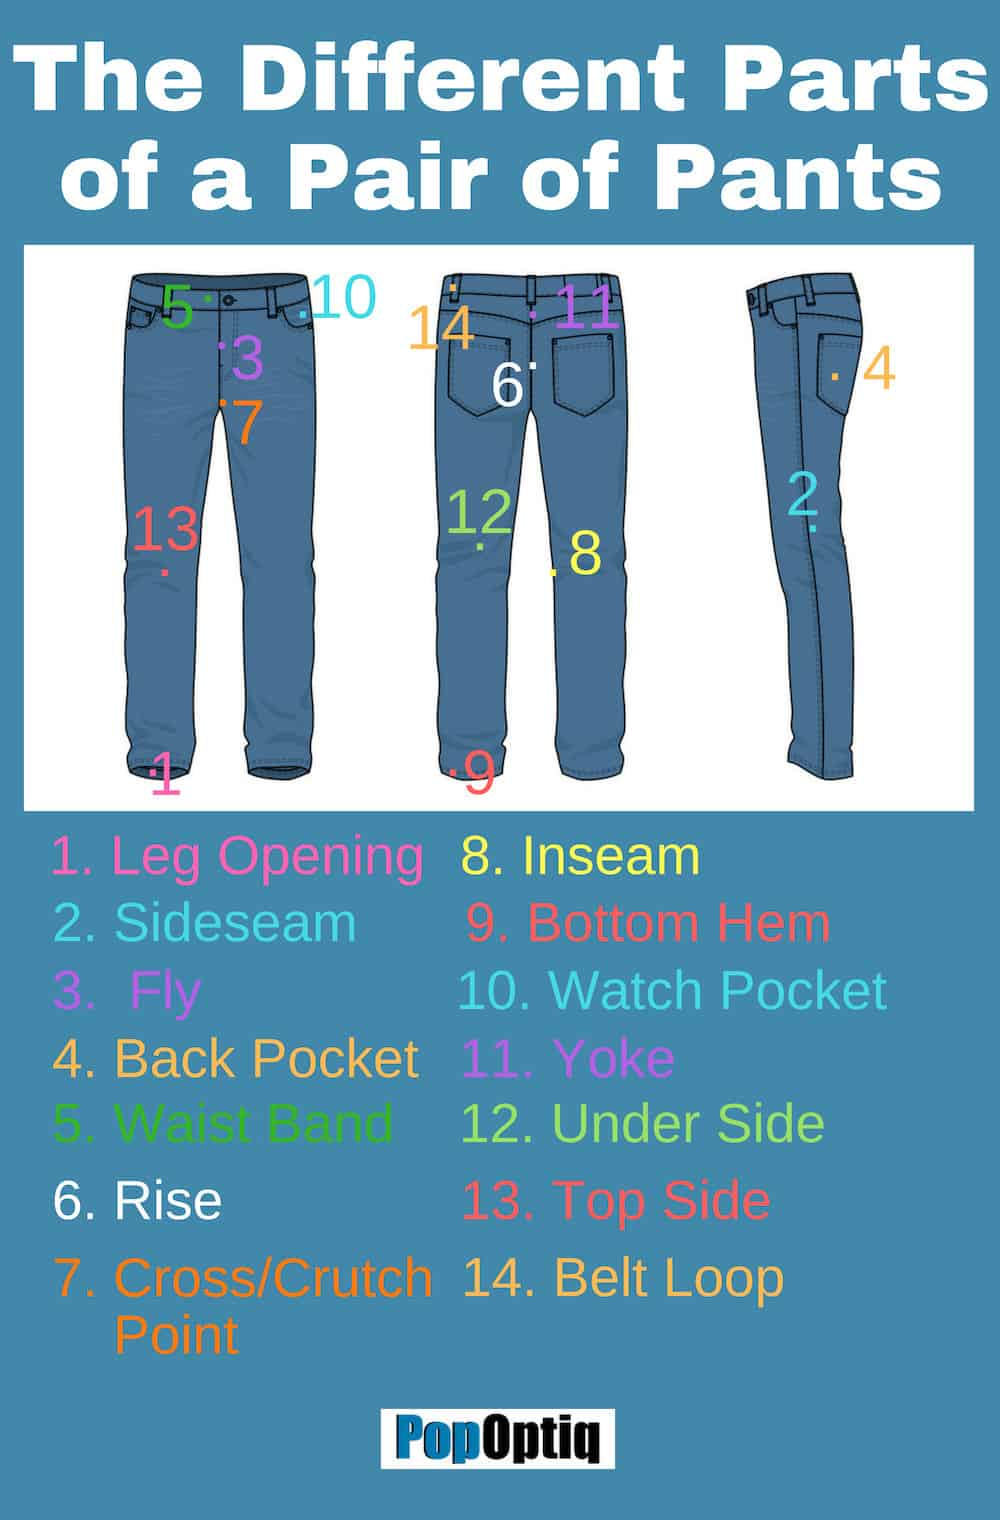 Awesome Chart showing the different parts of a pair of pants - illustration